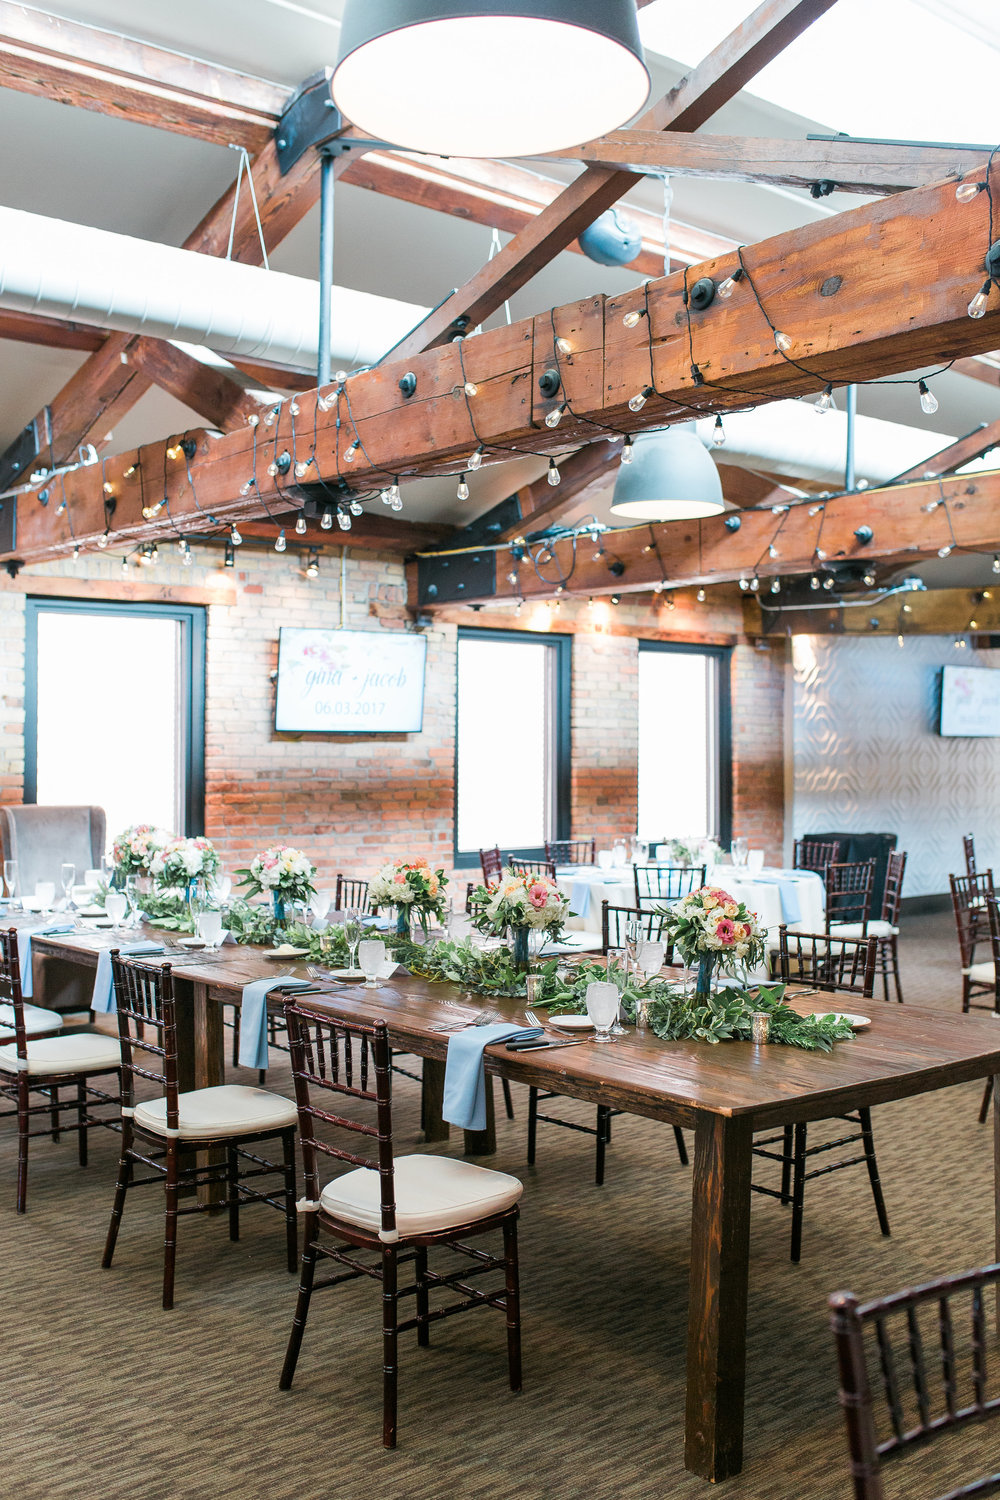 Rustic tablescape with wood beams and cafe lights at Minneapolis Event Centers wedding with floral head table centerpiece